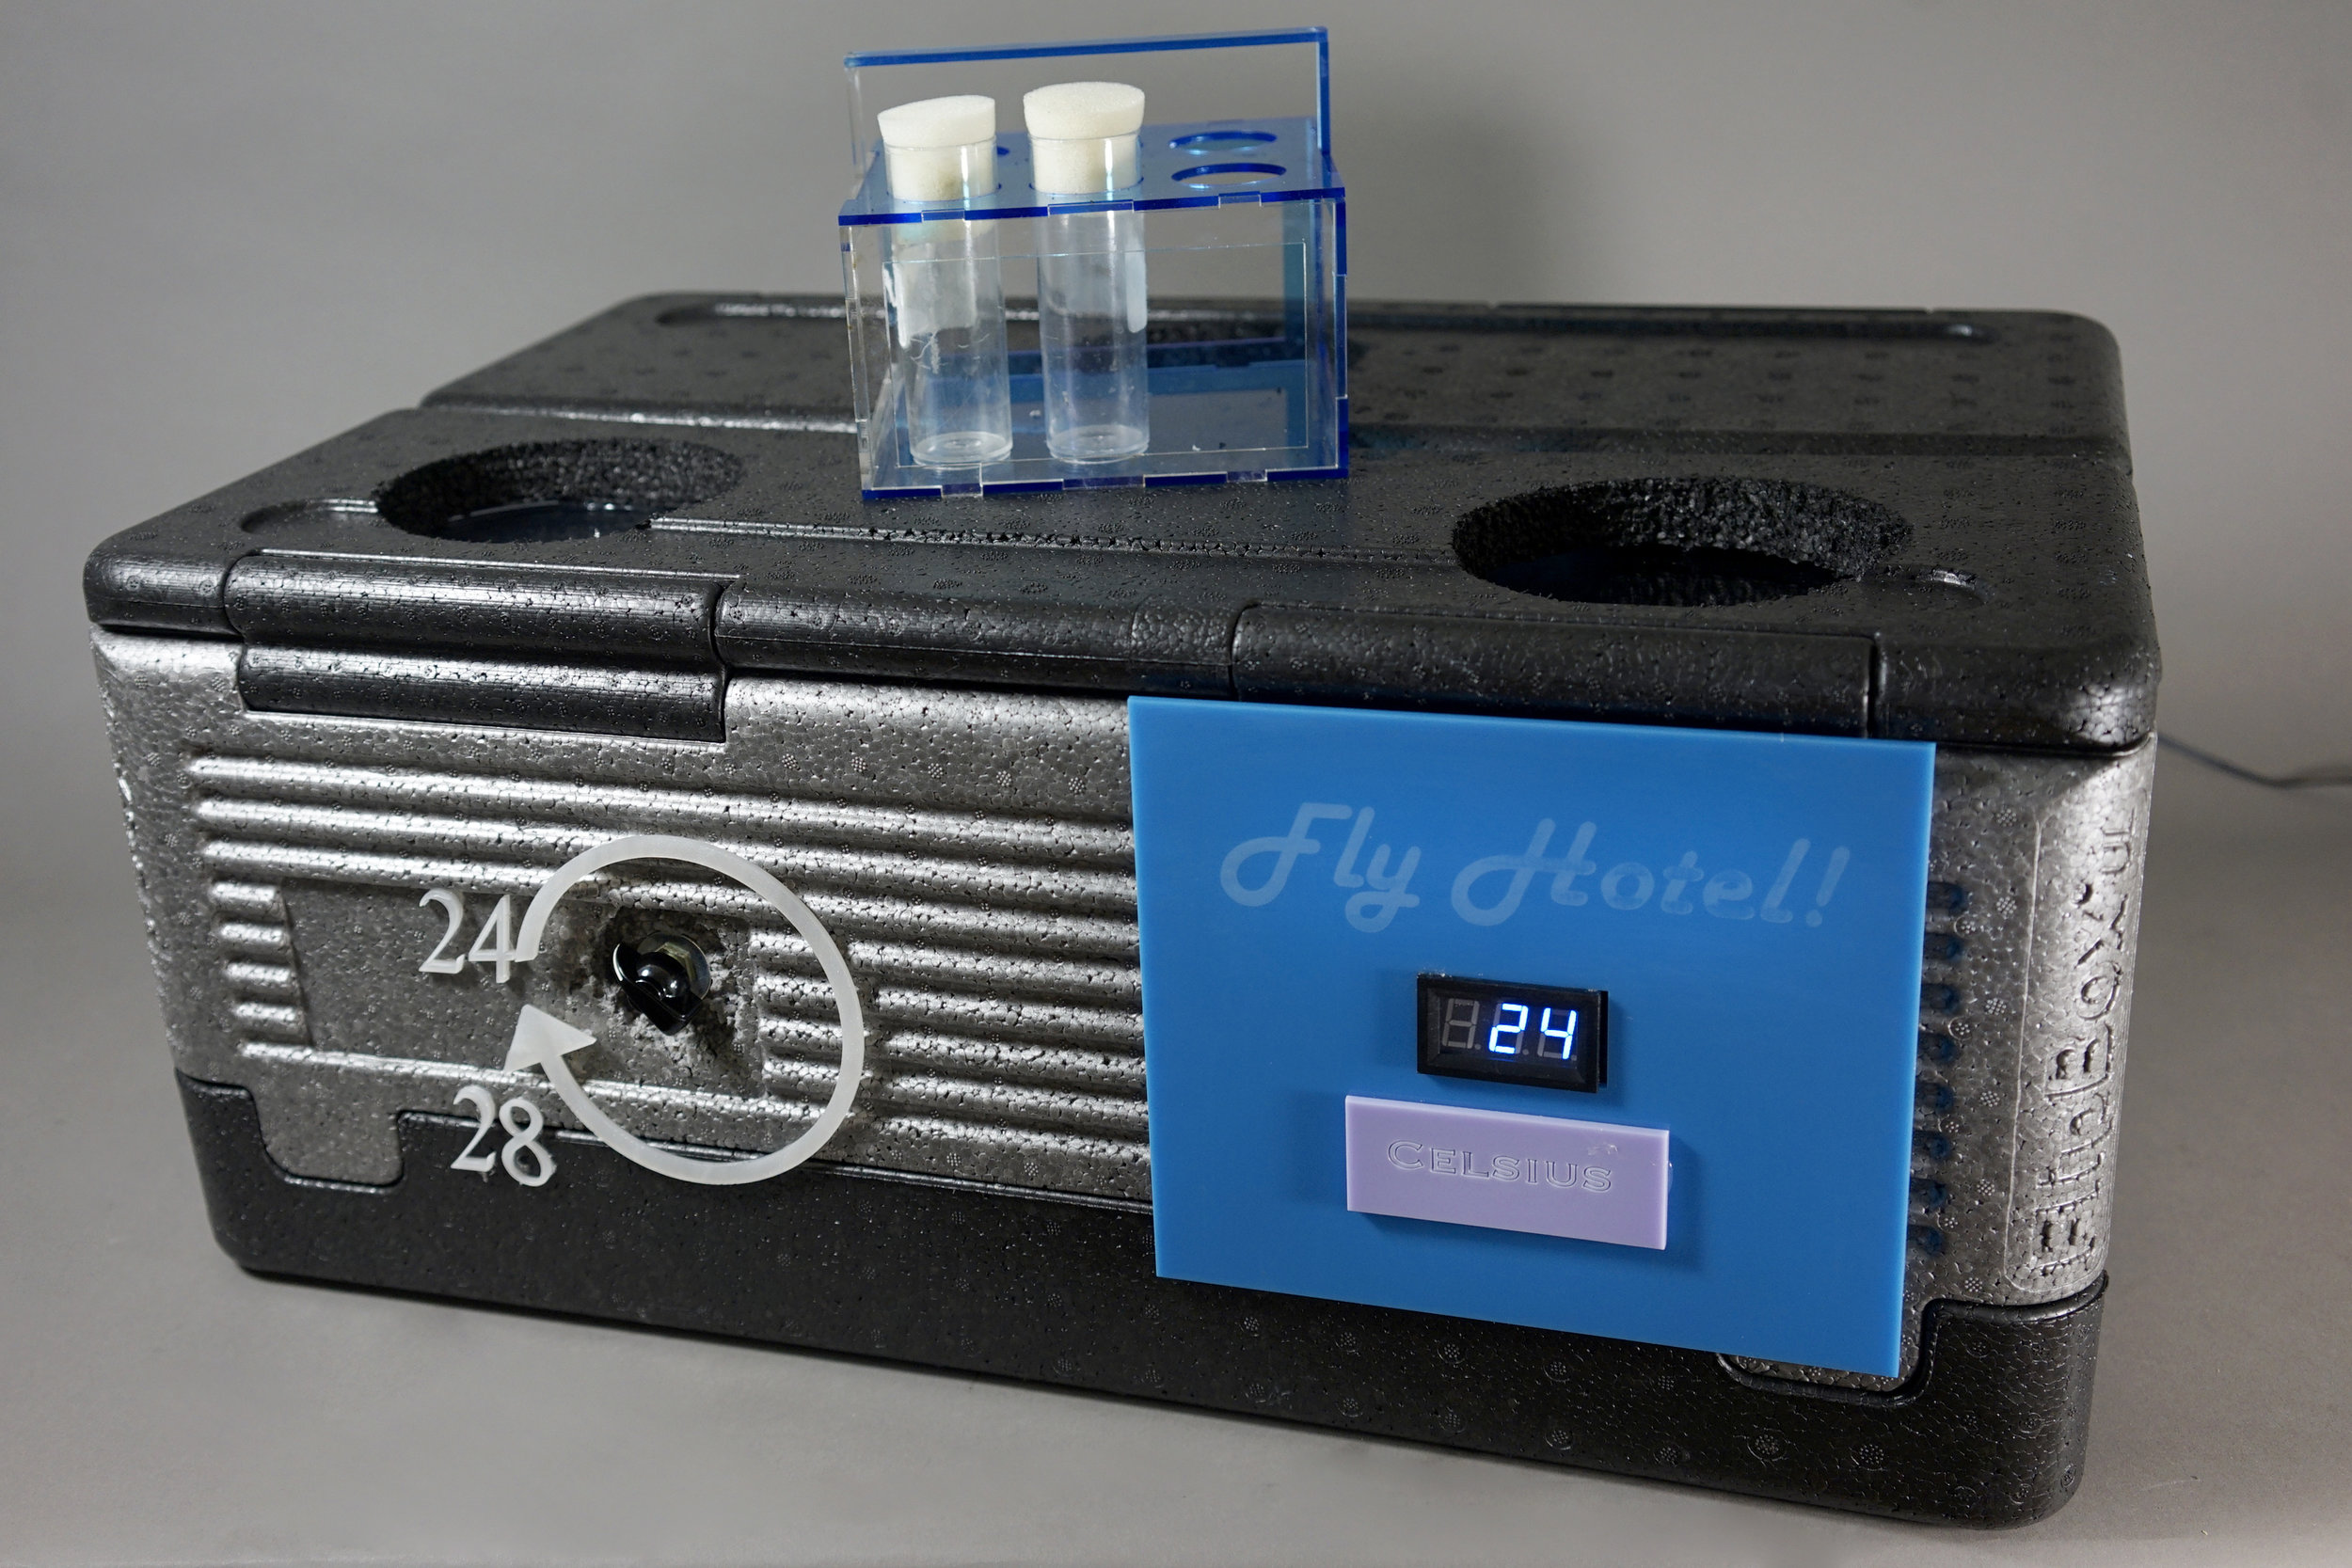 This is a fly incubator, created for our genetics instructor, by a group of four 9th grade students. With custom-made incubation tube caddies, this container keeps the fly larvae (also known as maggots : 0) in an adjustable, temperature-regulated environment. This was created by Alex, Indigo, Max and Kaira.